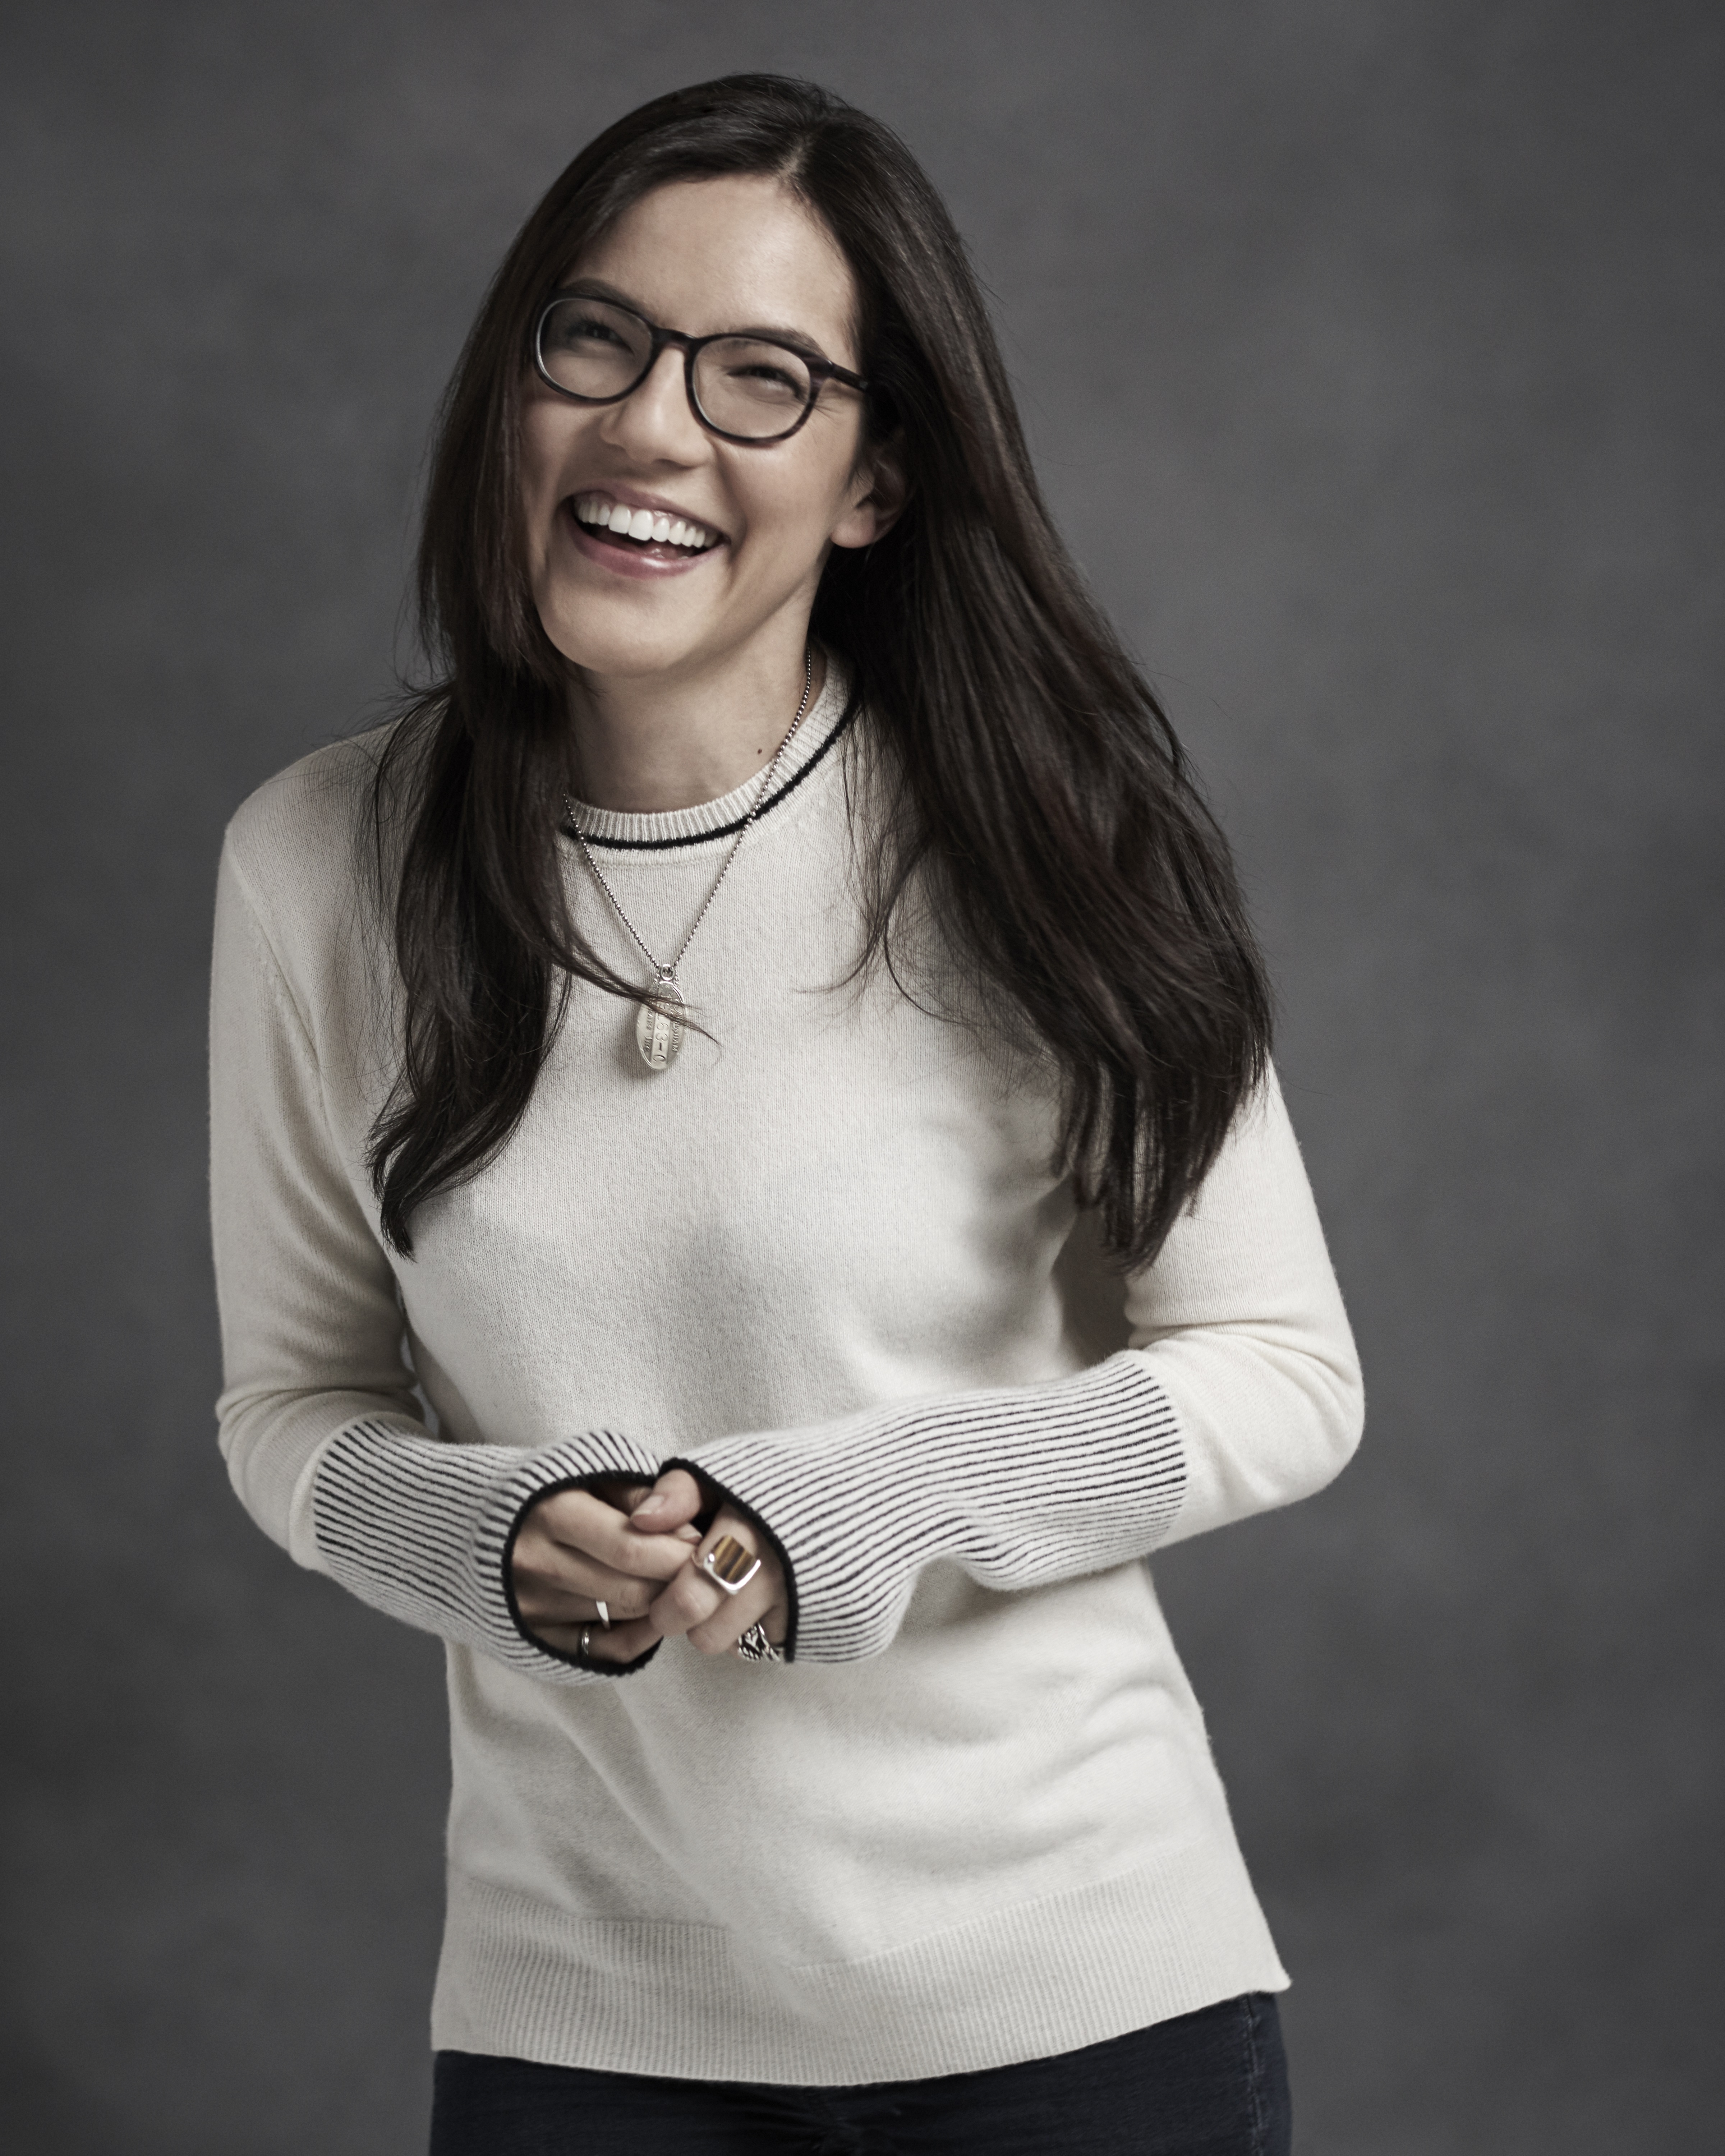 LOOK ALIVE OUT THERE: Sloane Crosley in Conversation with Chuck Klosterman